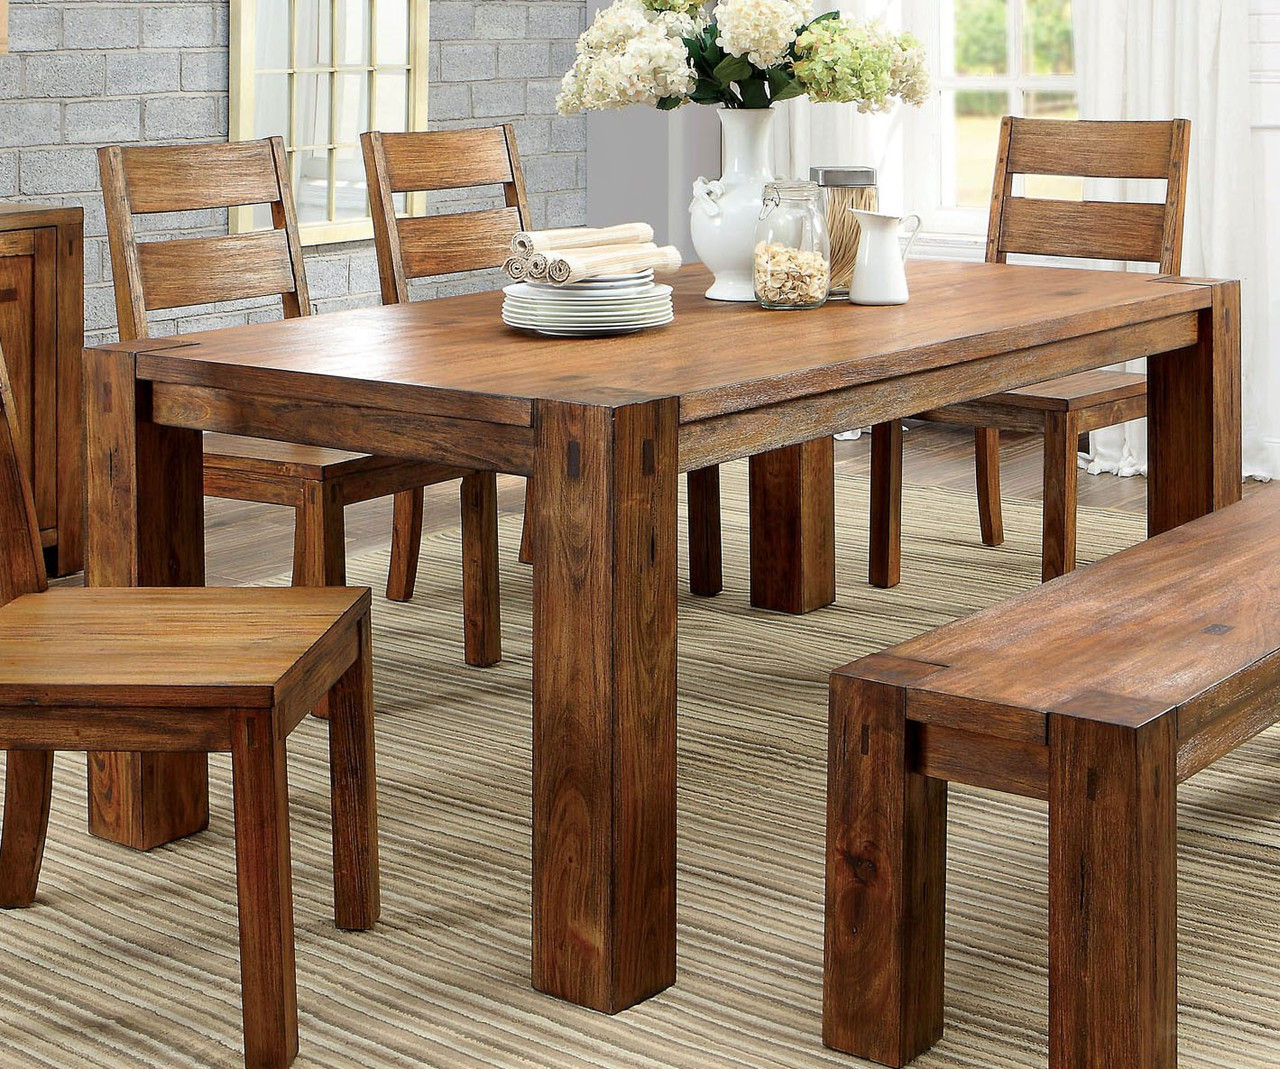 furniture of america cm3603t dark oak dining table set kitchen tables and chairs - Dark Oak Dining Table